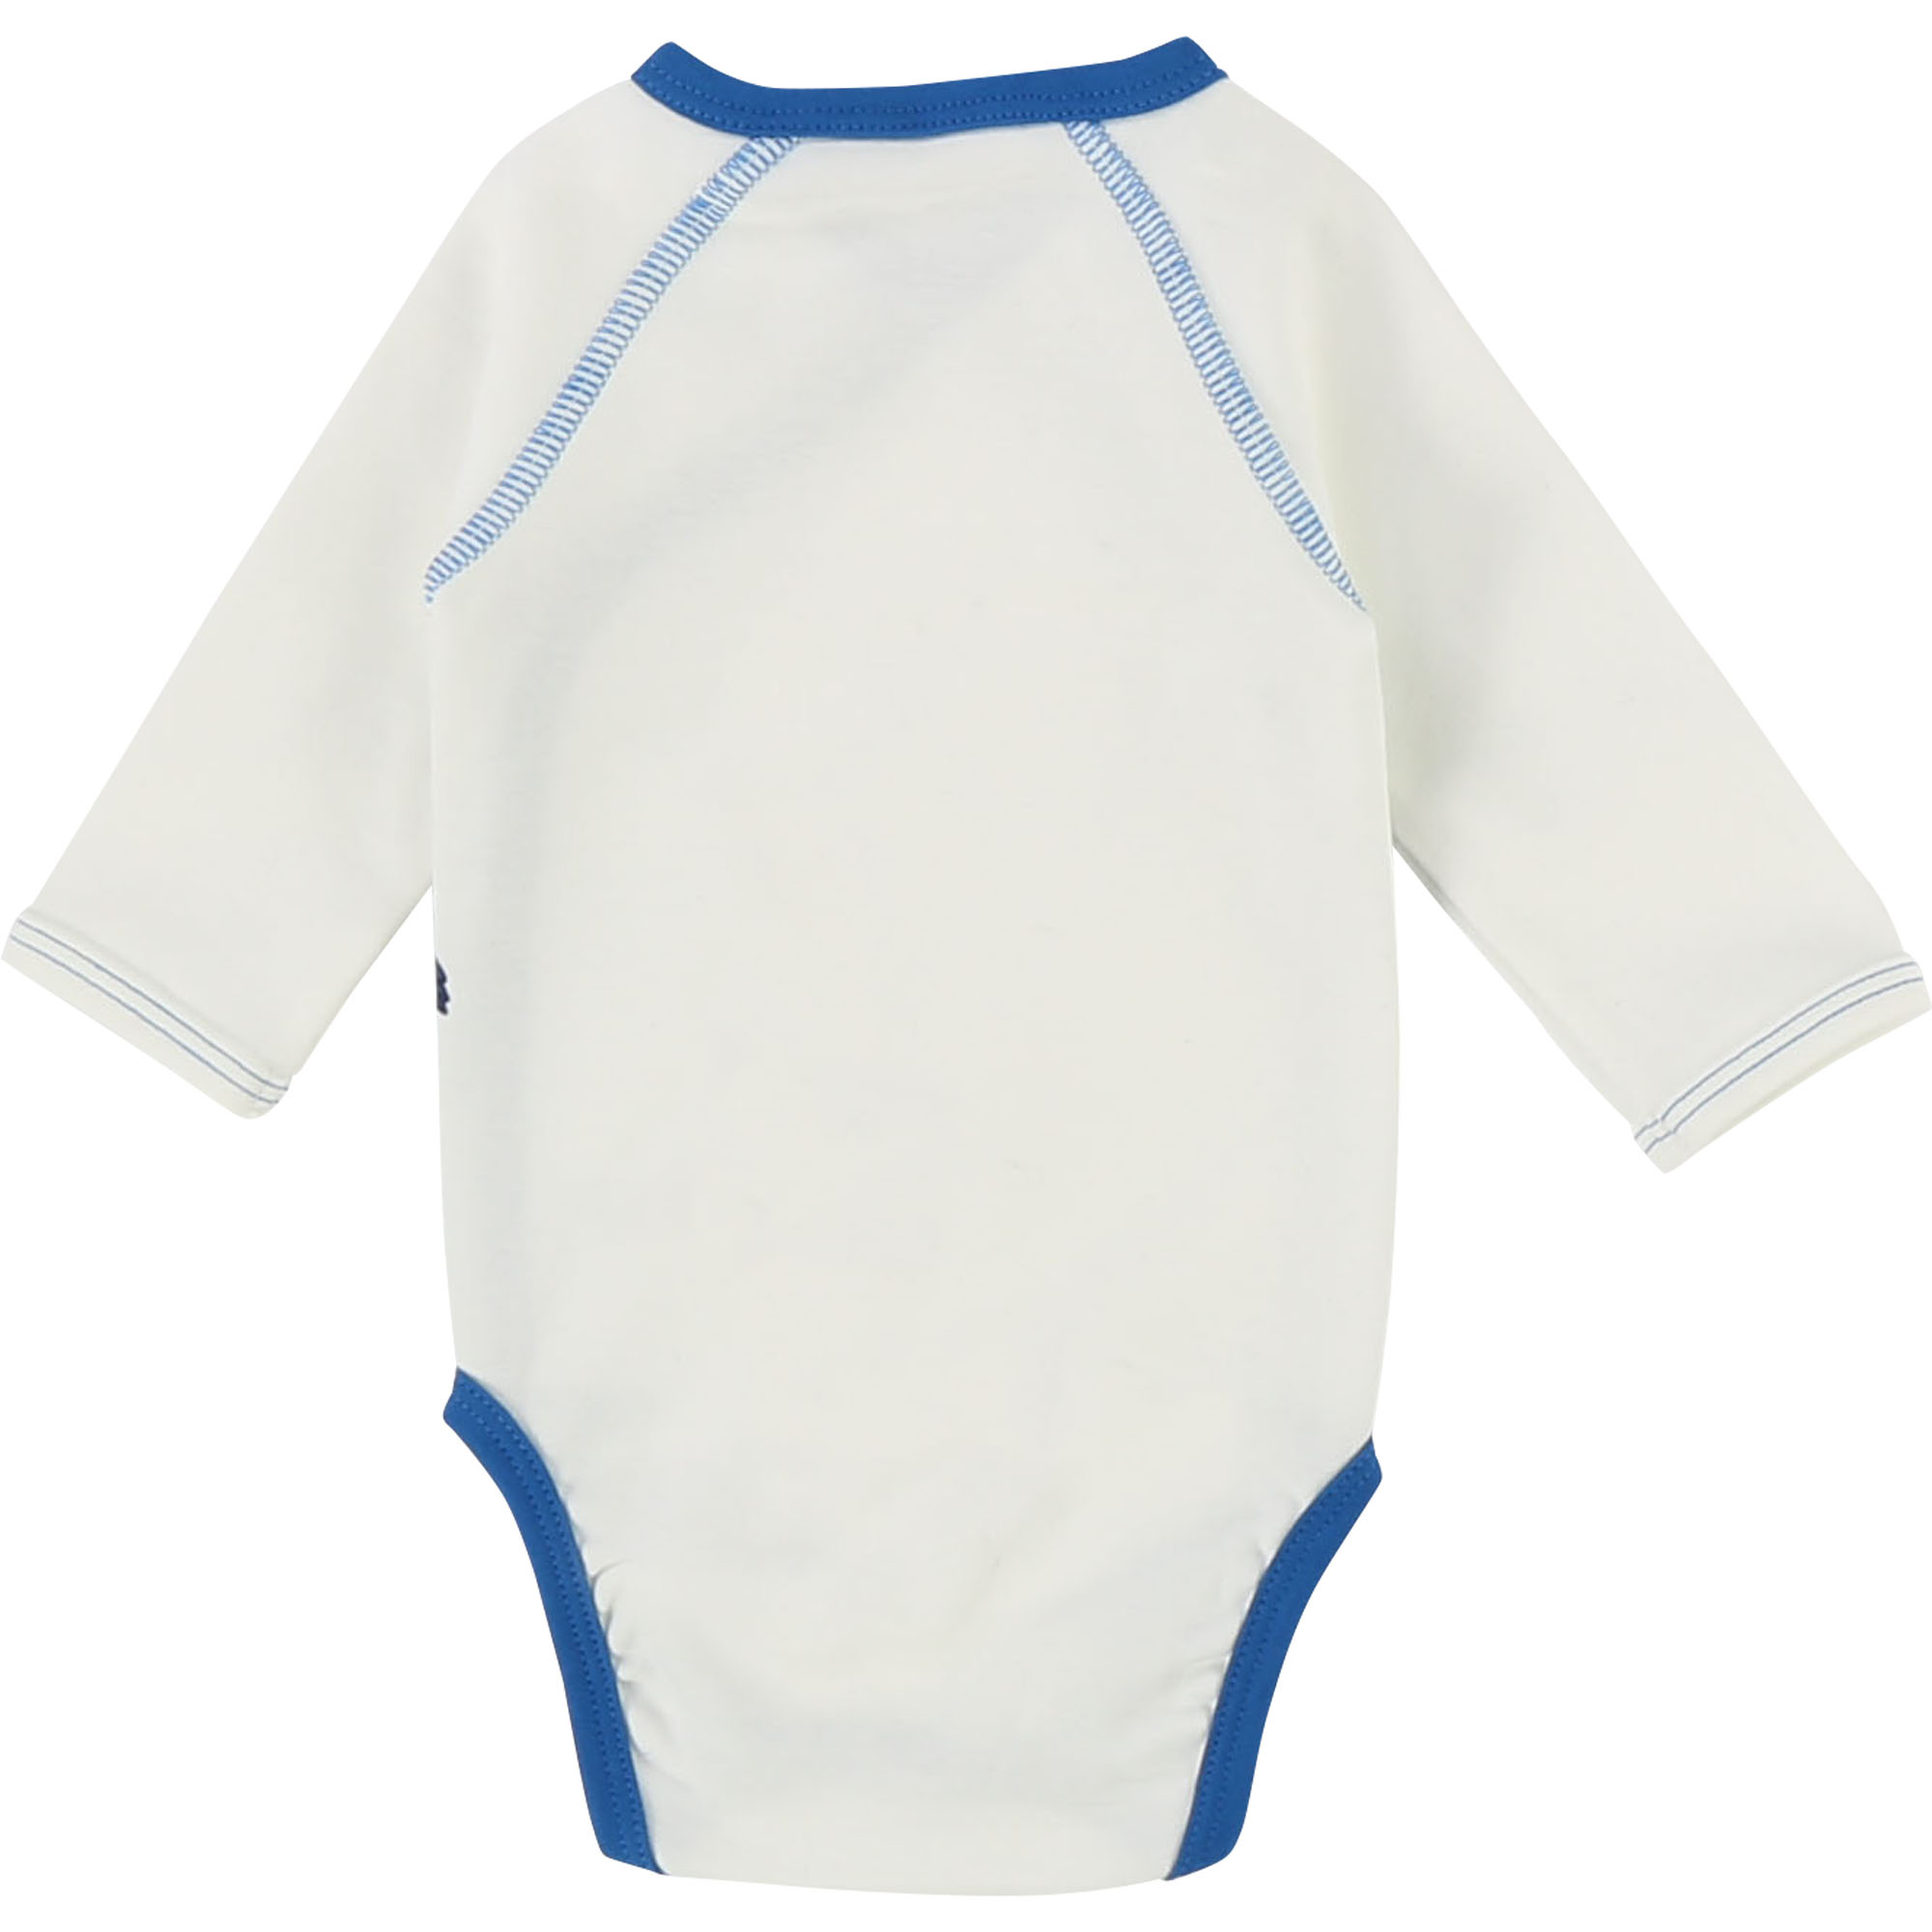 Onesie, bib and booties set LITTLE MARC JACOBS for UNISEX